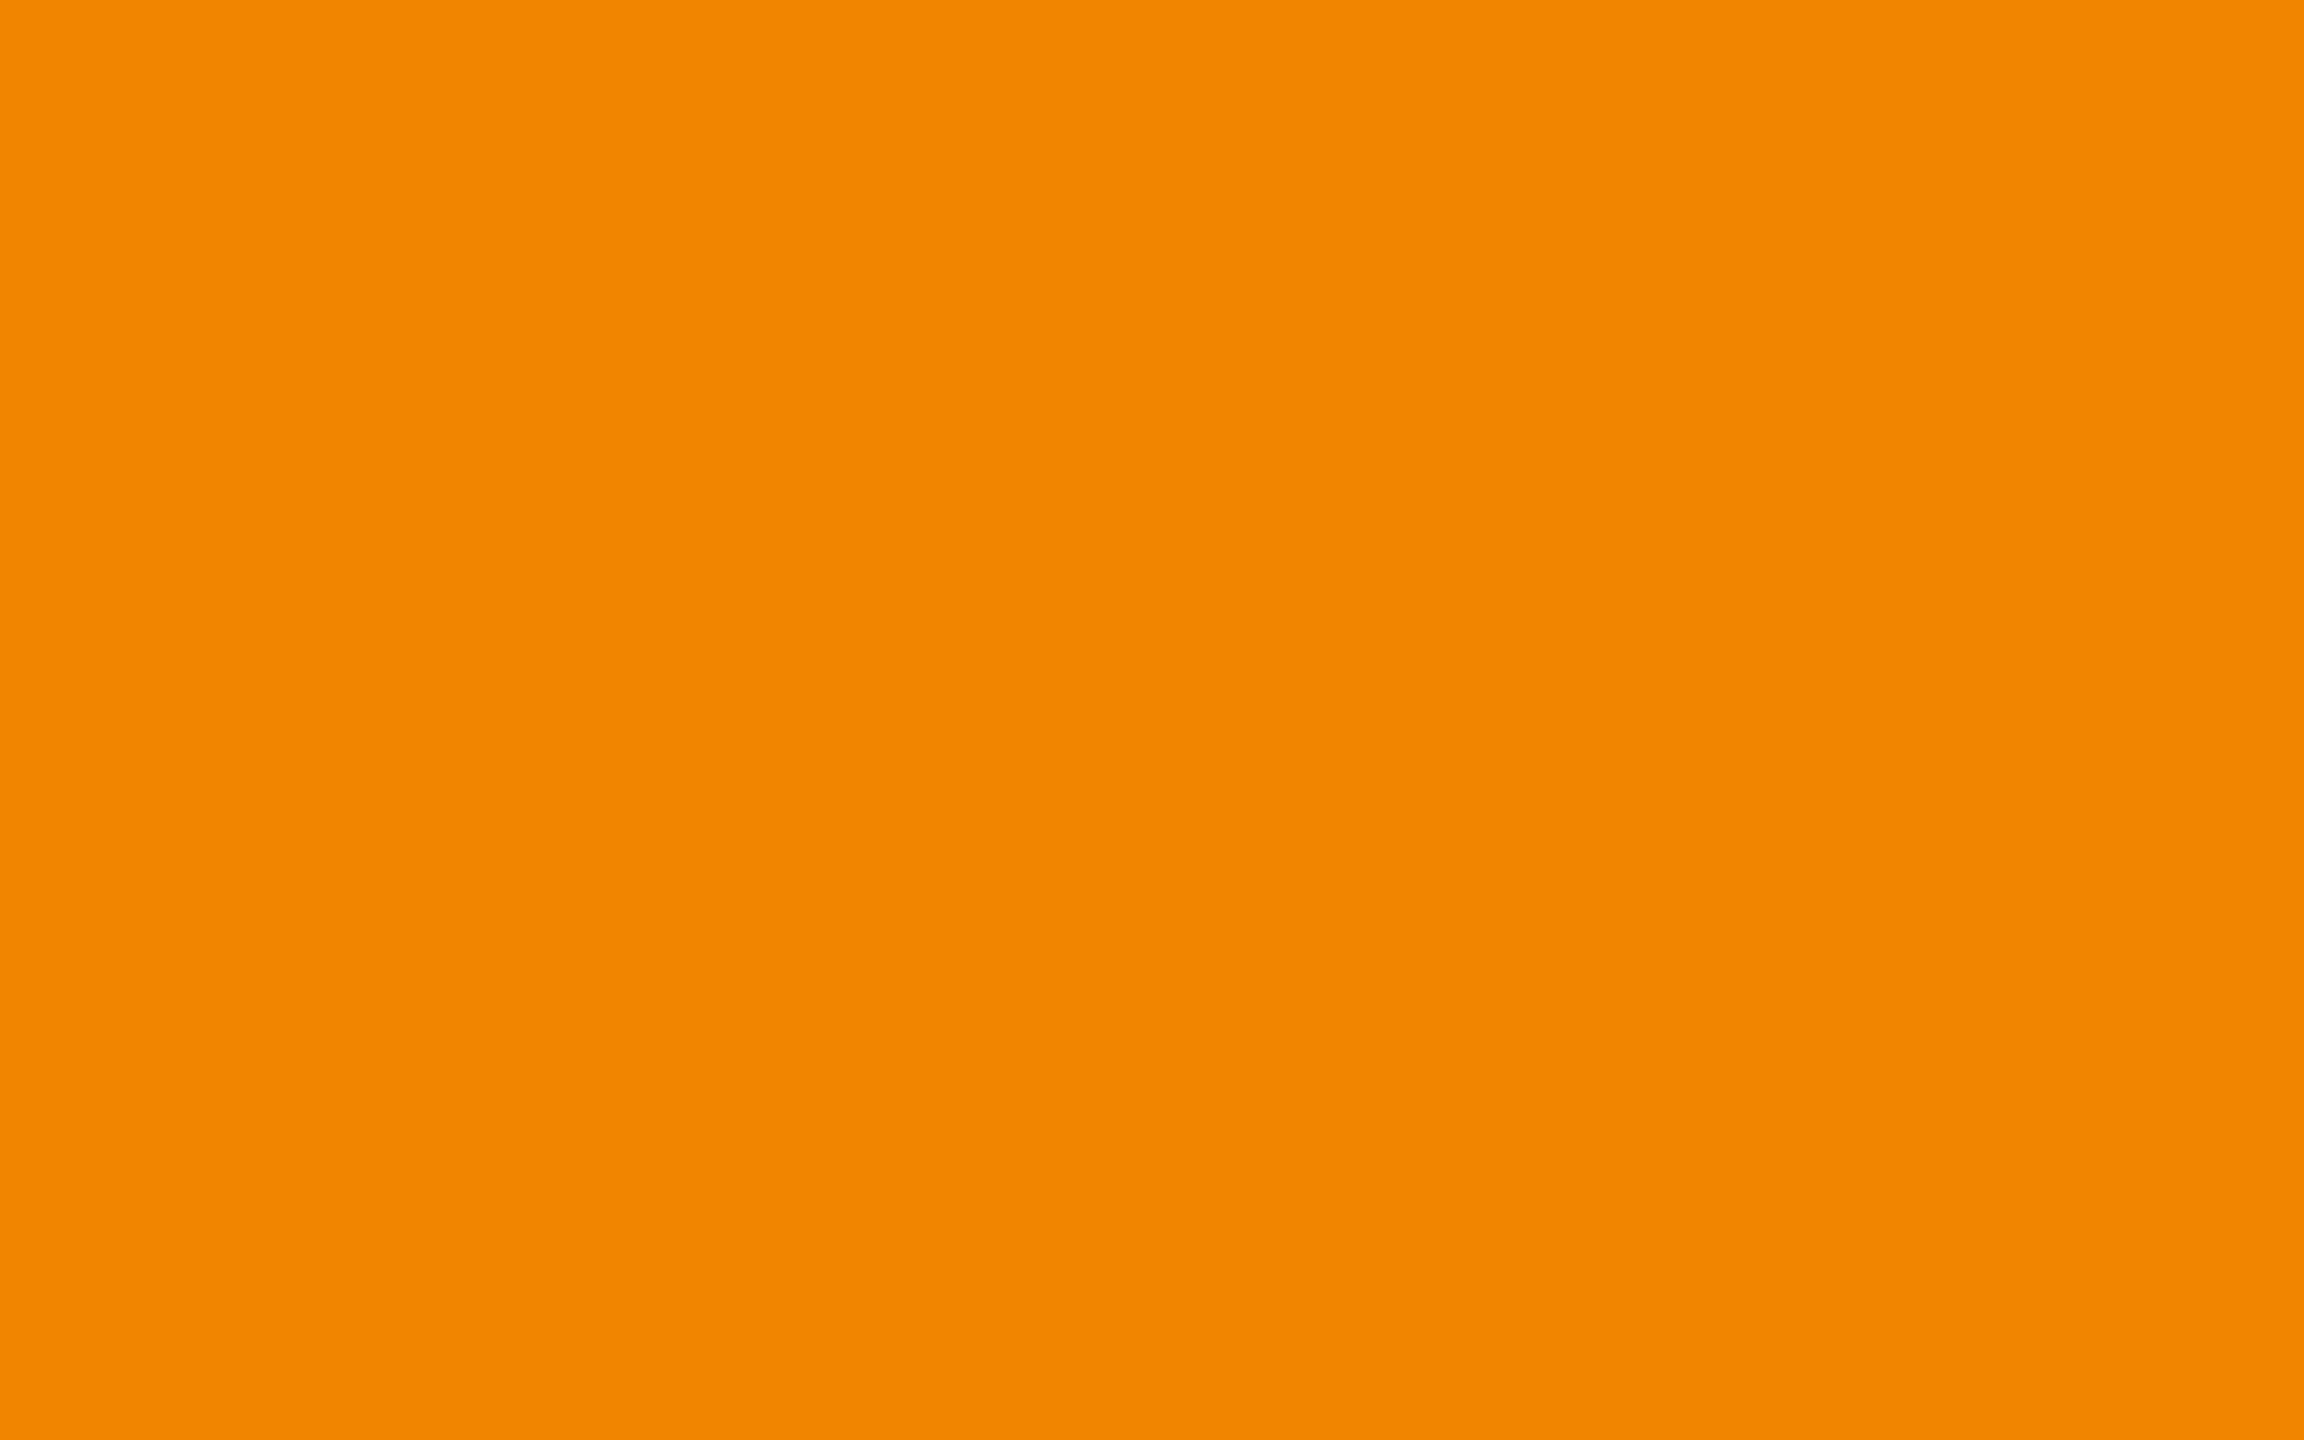 2304x1440 Tangerine Solid Color Background